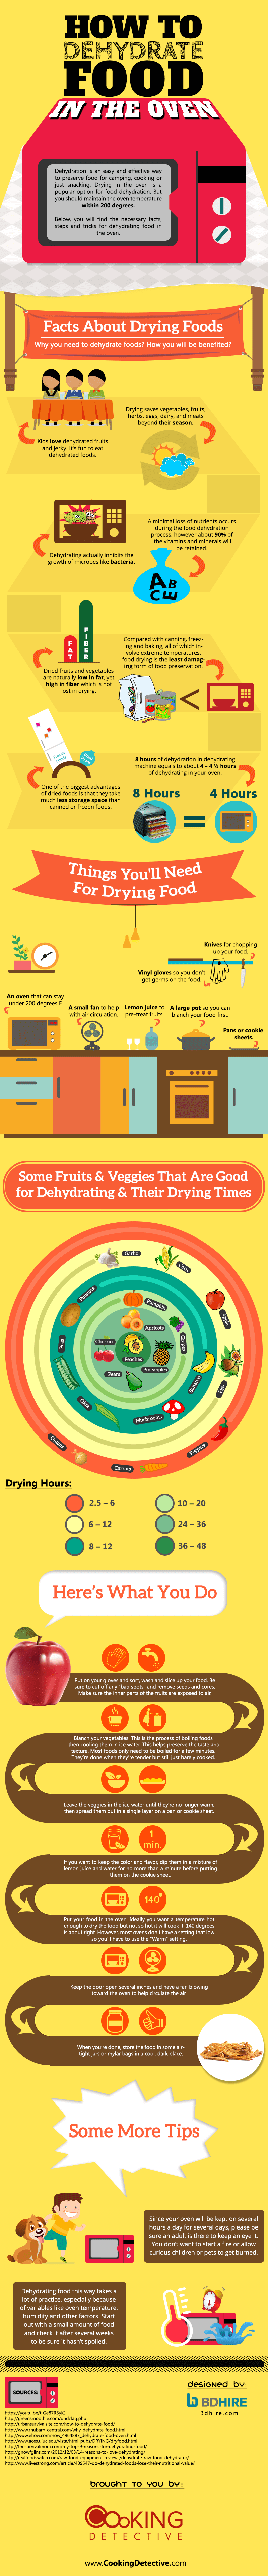 how-to-dehydrate-food